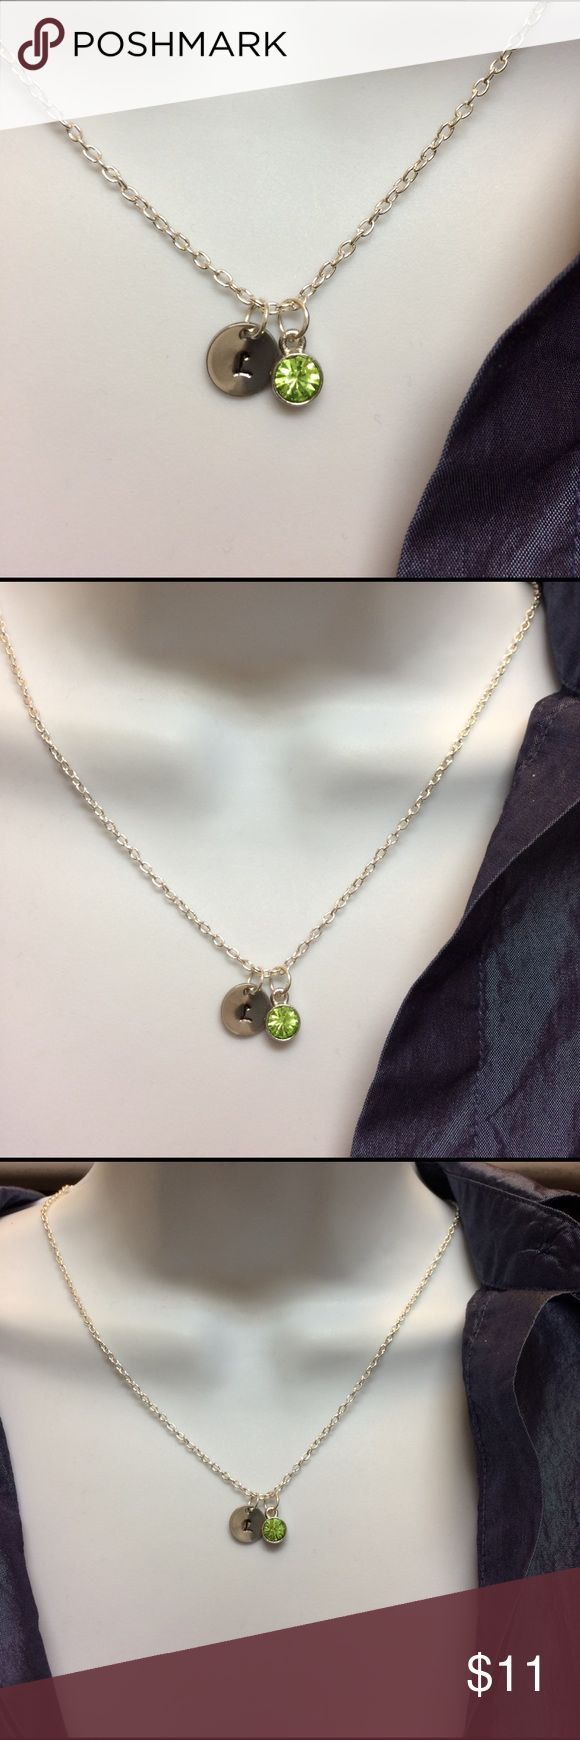 """August birthstone choose. Your initial necklace. Personalized August green birthstone with initial of your choice necklace, will hand stamp for your per order.  Necklace: 19"""", birthstone: 10mm----------------#b4371 Jewelry Necklaces"""